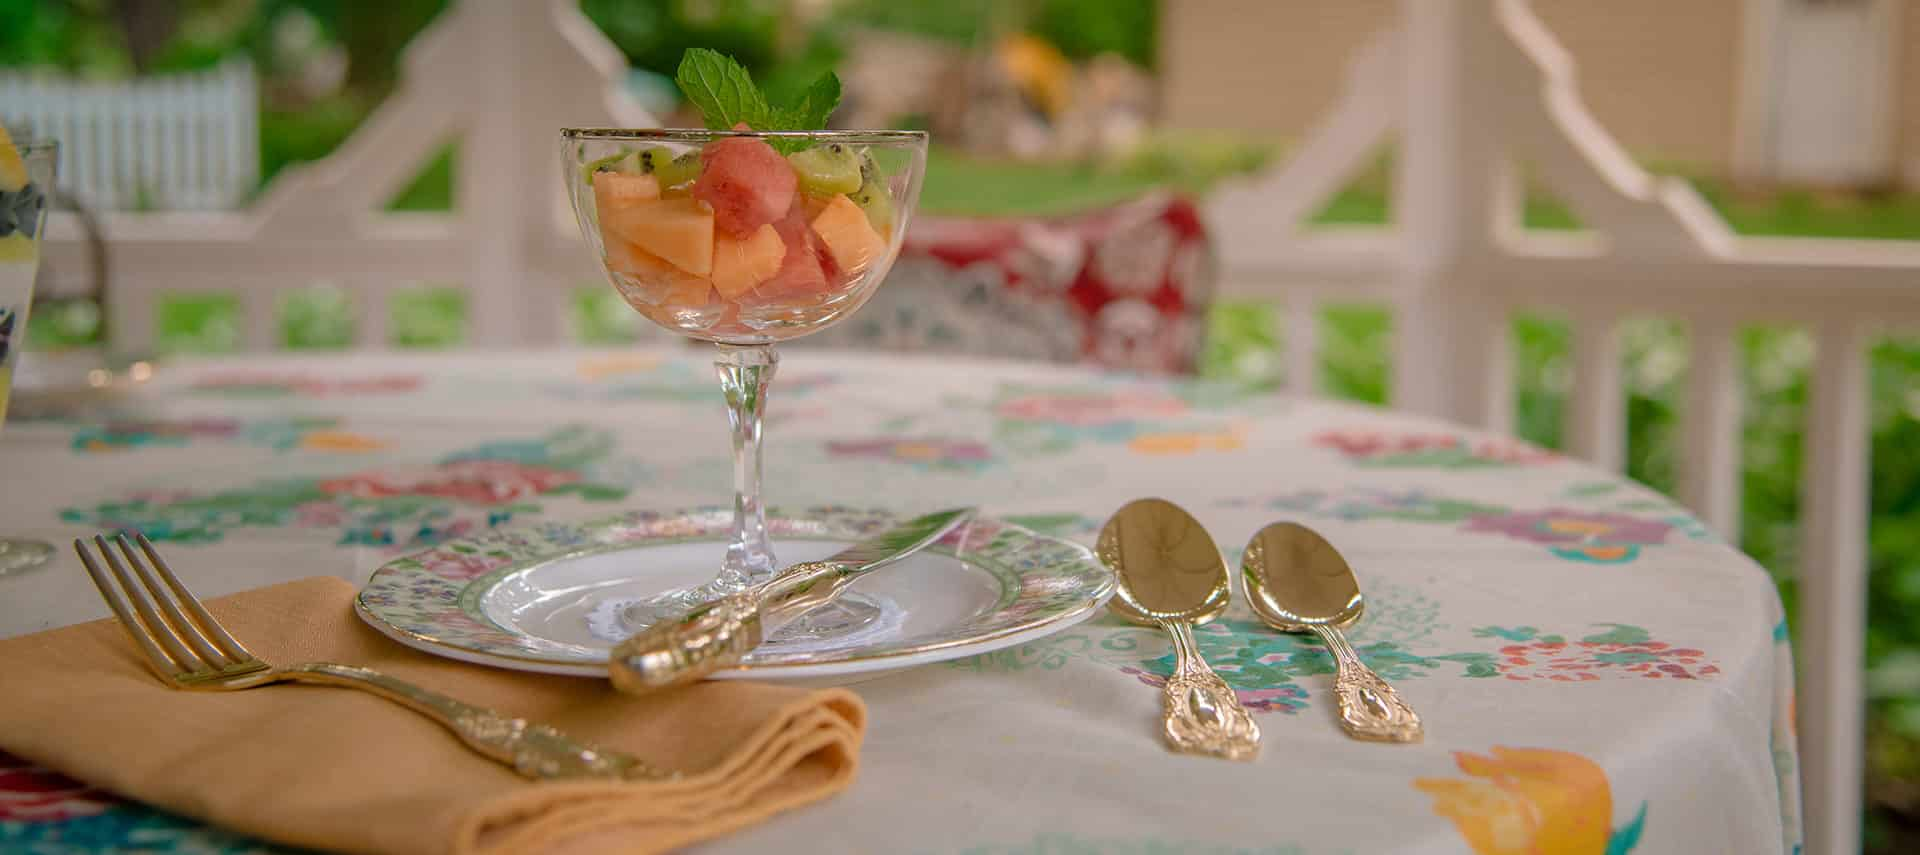 fresh melon and cantaloupe in stemmed glass on plate with gold utensils